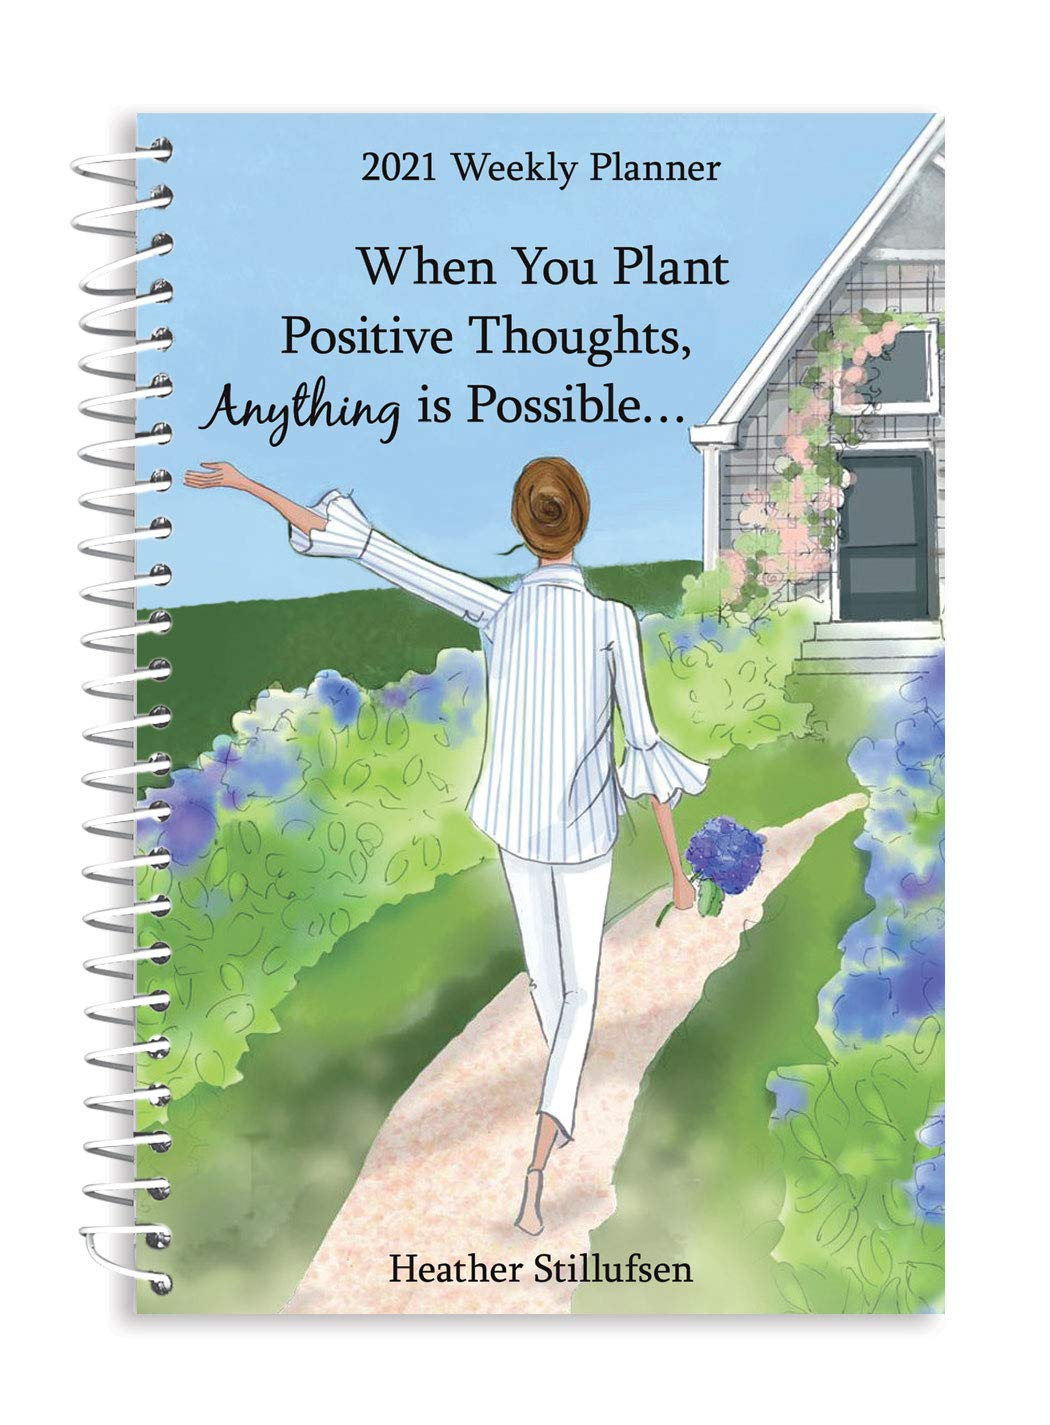 """Image for Blue Mountain Arts 2021 Weekly & Monthly Planner """"When You Plant Positive Thoughts, Anything Is Possible..."""" 8 x 6 in. Spiral-Bound Date Book for Her, by Heather Stillufsen"""